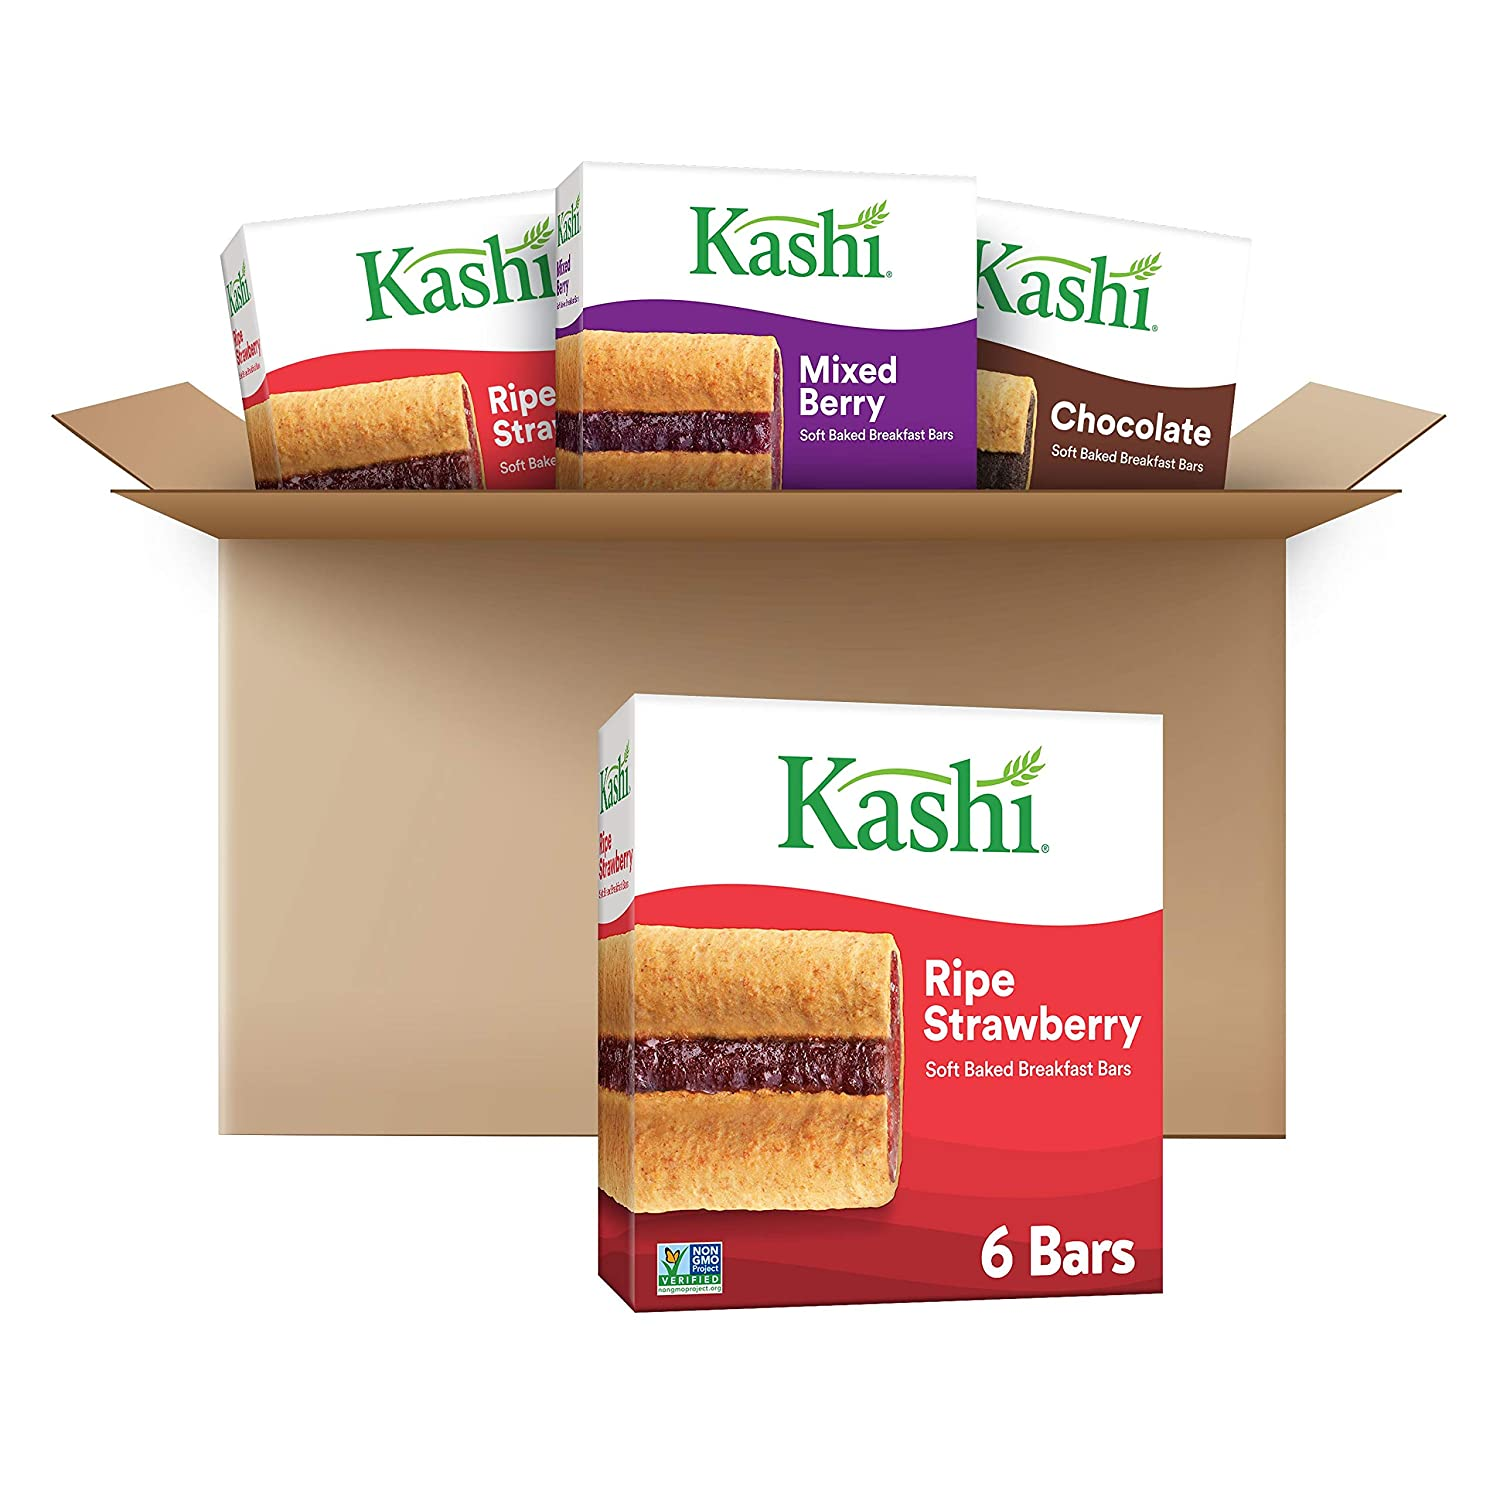 Kashi, Soft Baked Breakfast Bars, Variety Pack, Vegan, 2- Ripe Strawberry, 1 - Mixed Berry, and 1 Chocolate bars(4 boxes, 24 bars)